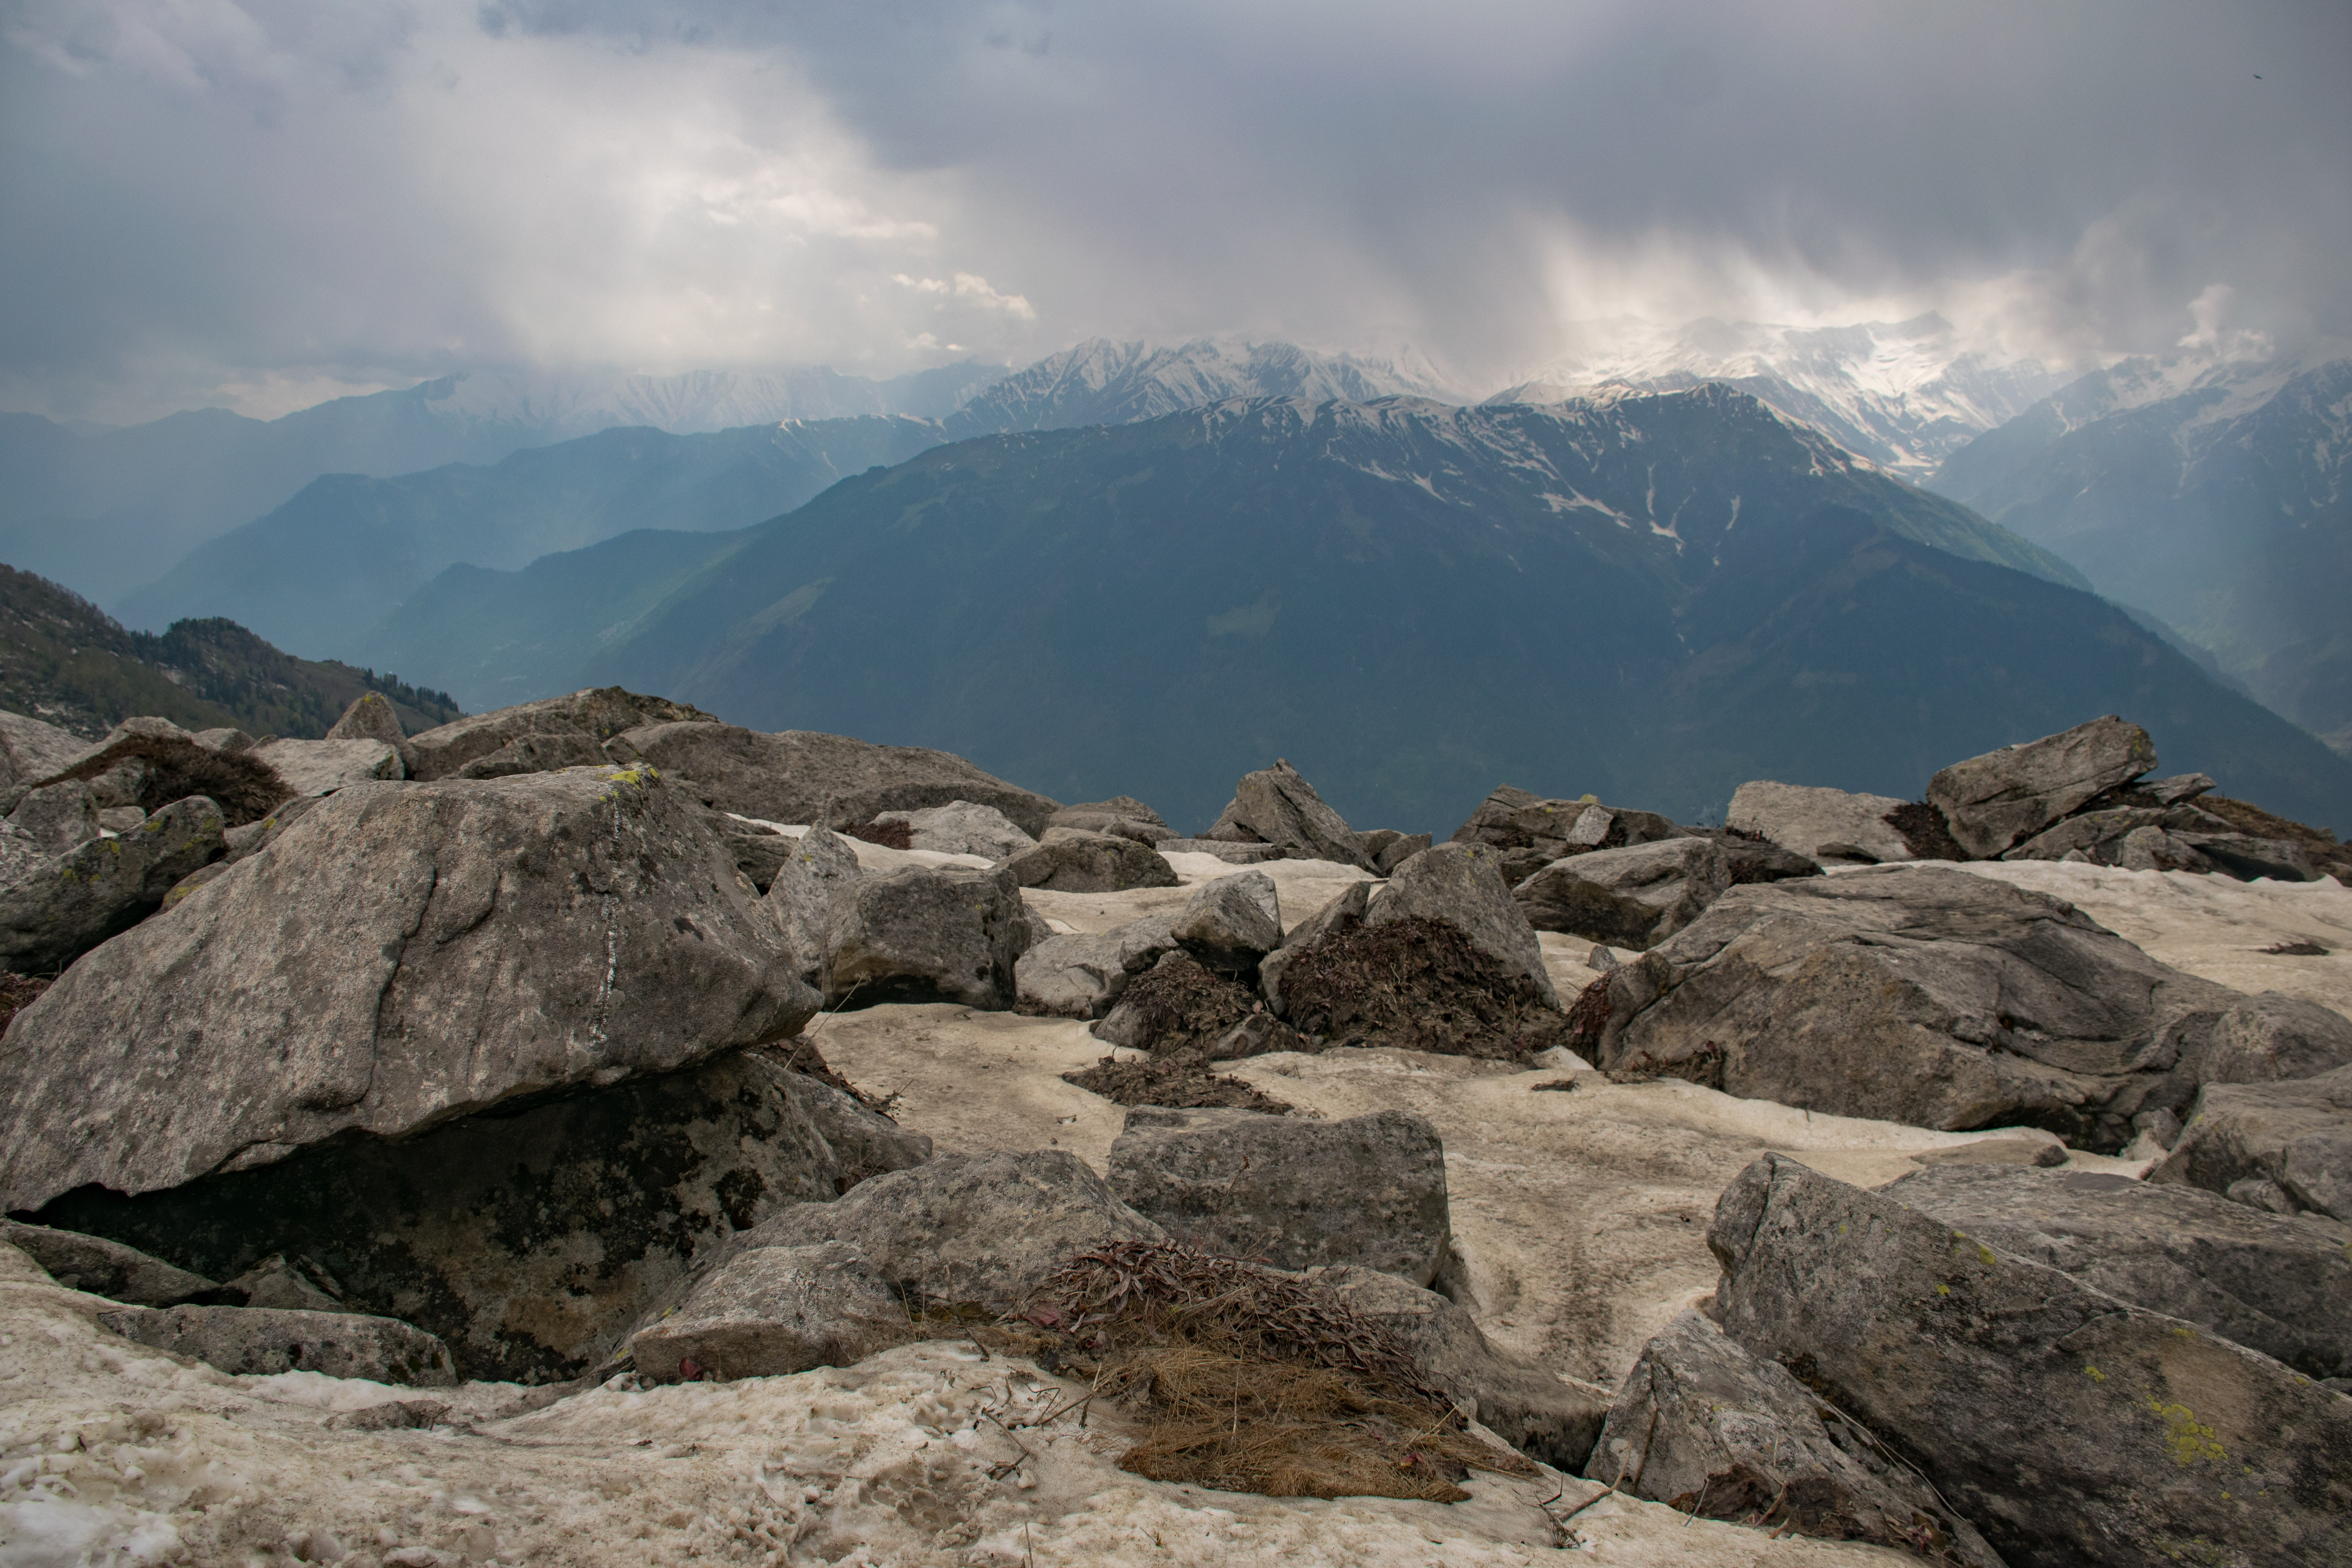 Gray rocks in front of mountain photo